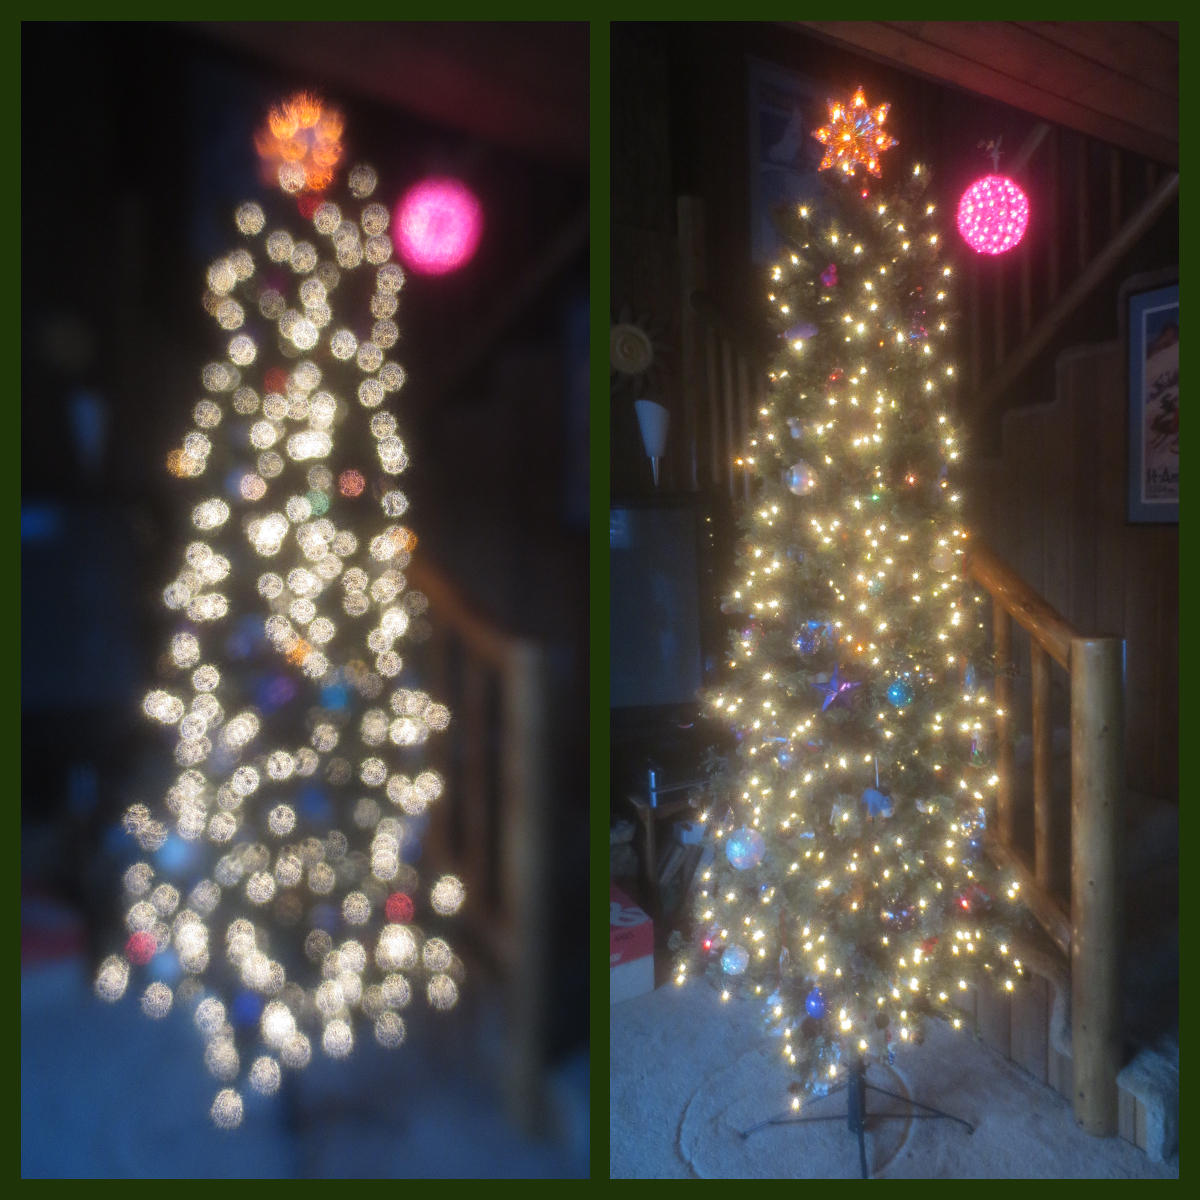 side by side images of a Christmas tree, one blurred, one not